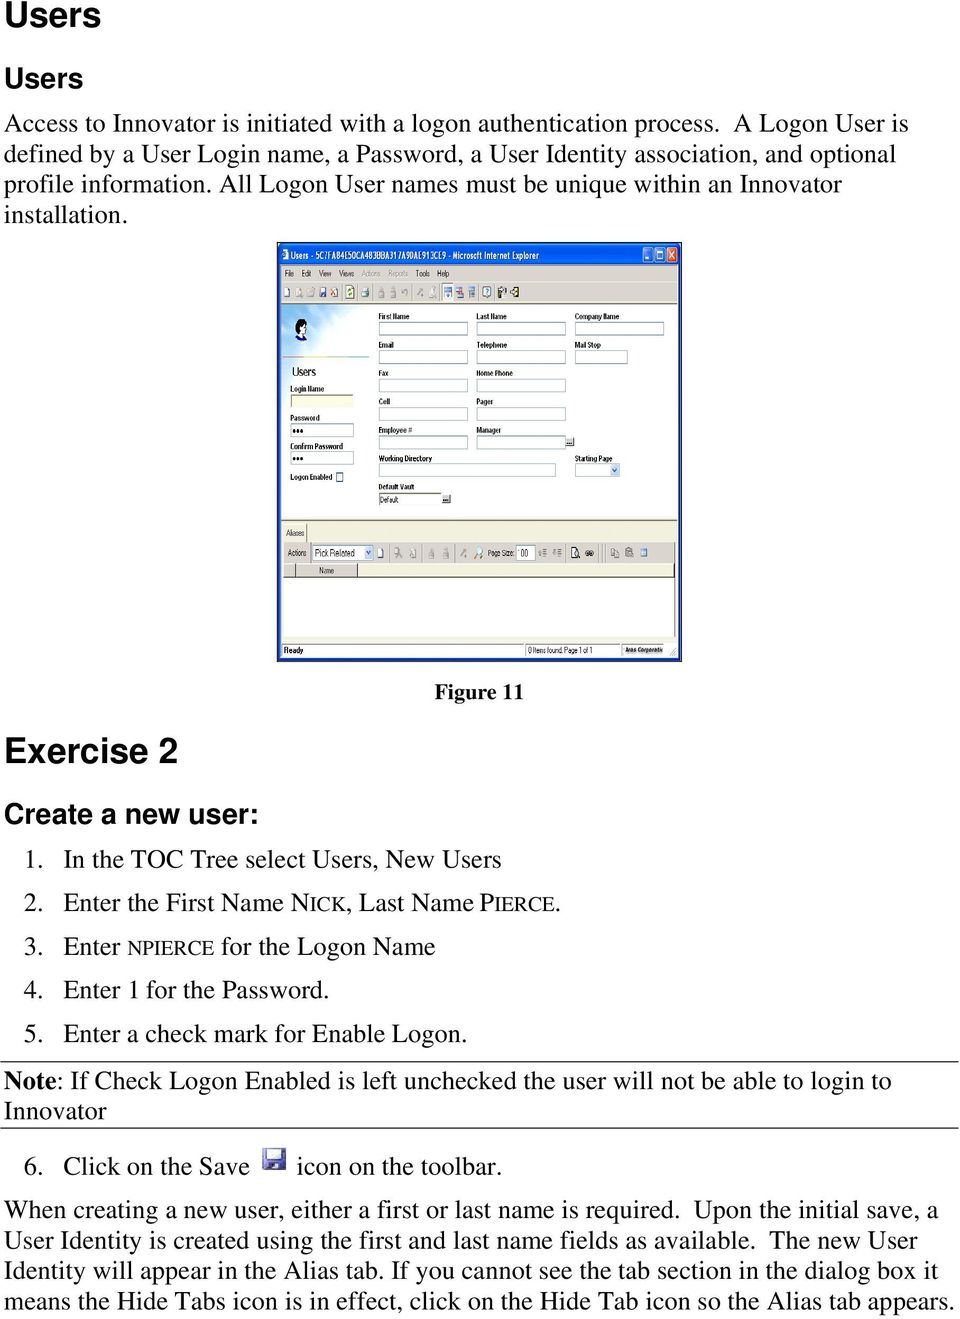 Exercise 2 Figure 11 Create a new user: 1. In the TOC Tree select Users, New Users 2. Enter the First Name NICK, Last Name PIERCE. 3. Enter NPIERCE for the Logon Name 4. Enter 1 for the Password. 5.